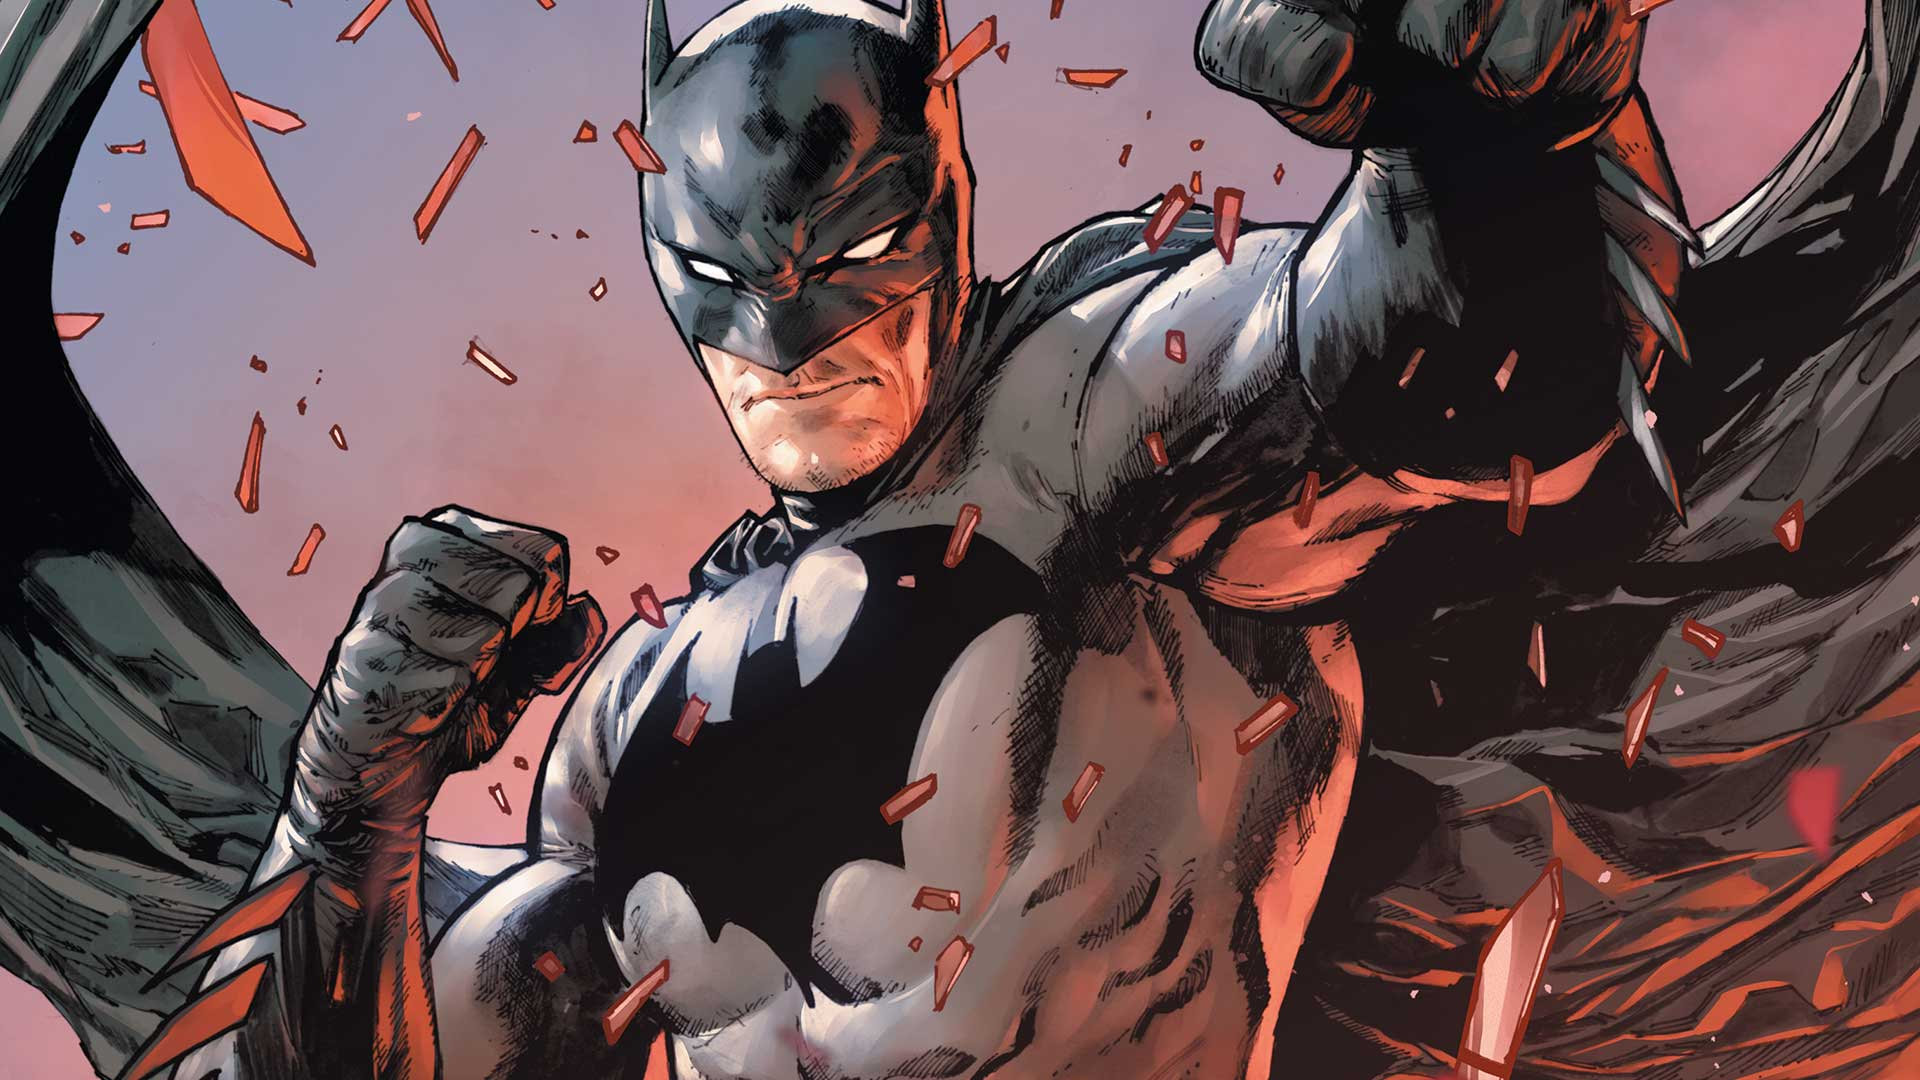 Batman #61 takes the audience for a ride into the dark bowels of madness. Readers unacquainted with the insane young Mathew Warner (Call him Bruce) may not fully understand the issue until its inevitable reveal, but fans that have remained faithful to the title since issue #38 will be aware of the narrative amalgam at hand. Warner arranged his parents' death in a demented recreation of the murder of Thomas and Martha Wayne. The boy who wants to be Bruce Wayne returns in this somewhat ambiguous one-shot with ties to a deeper plot.